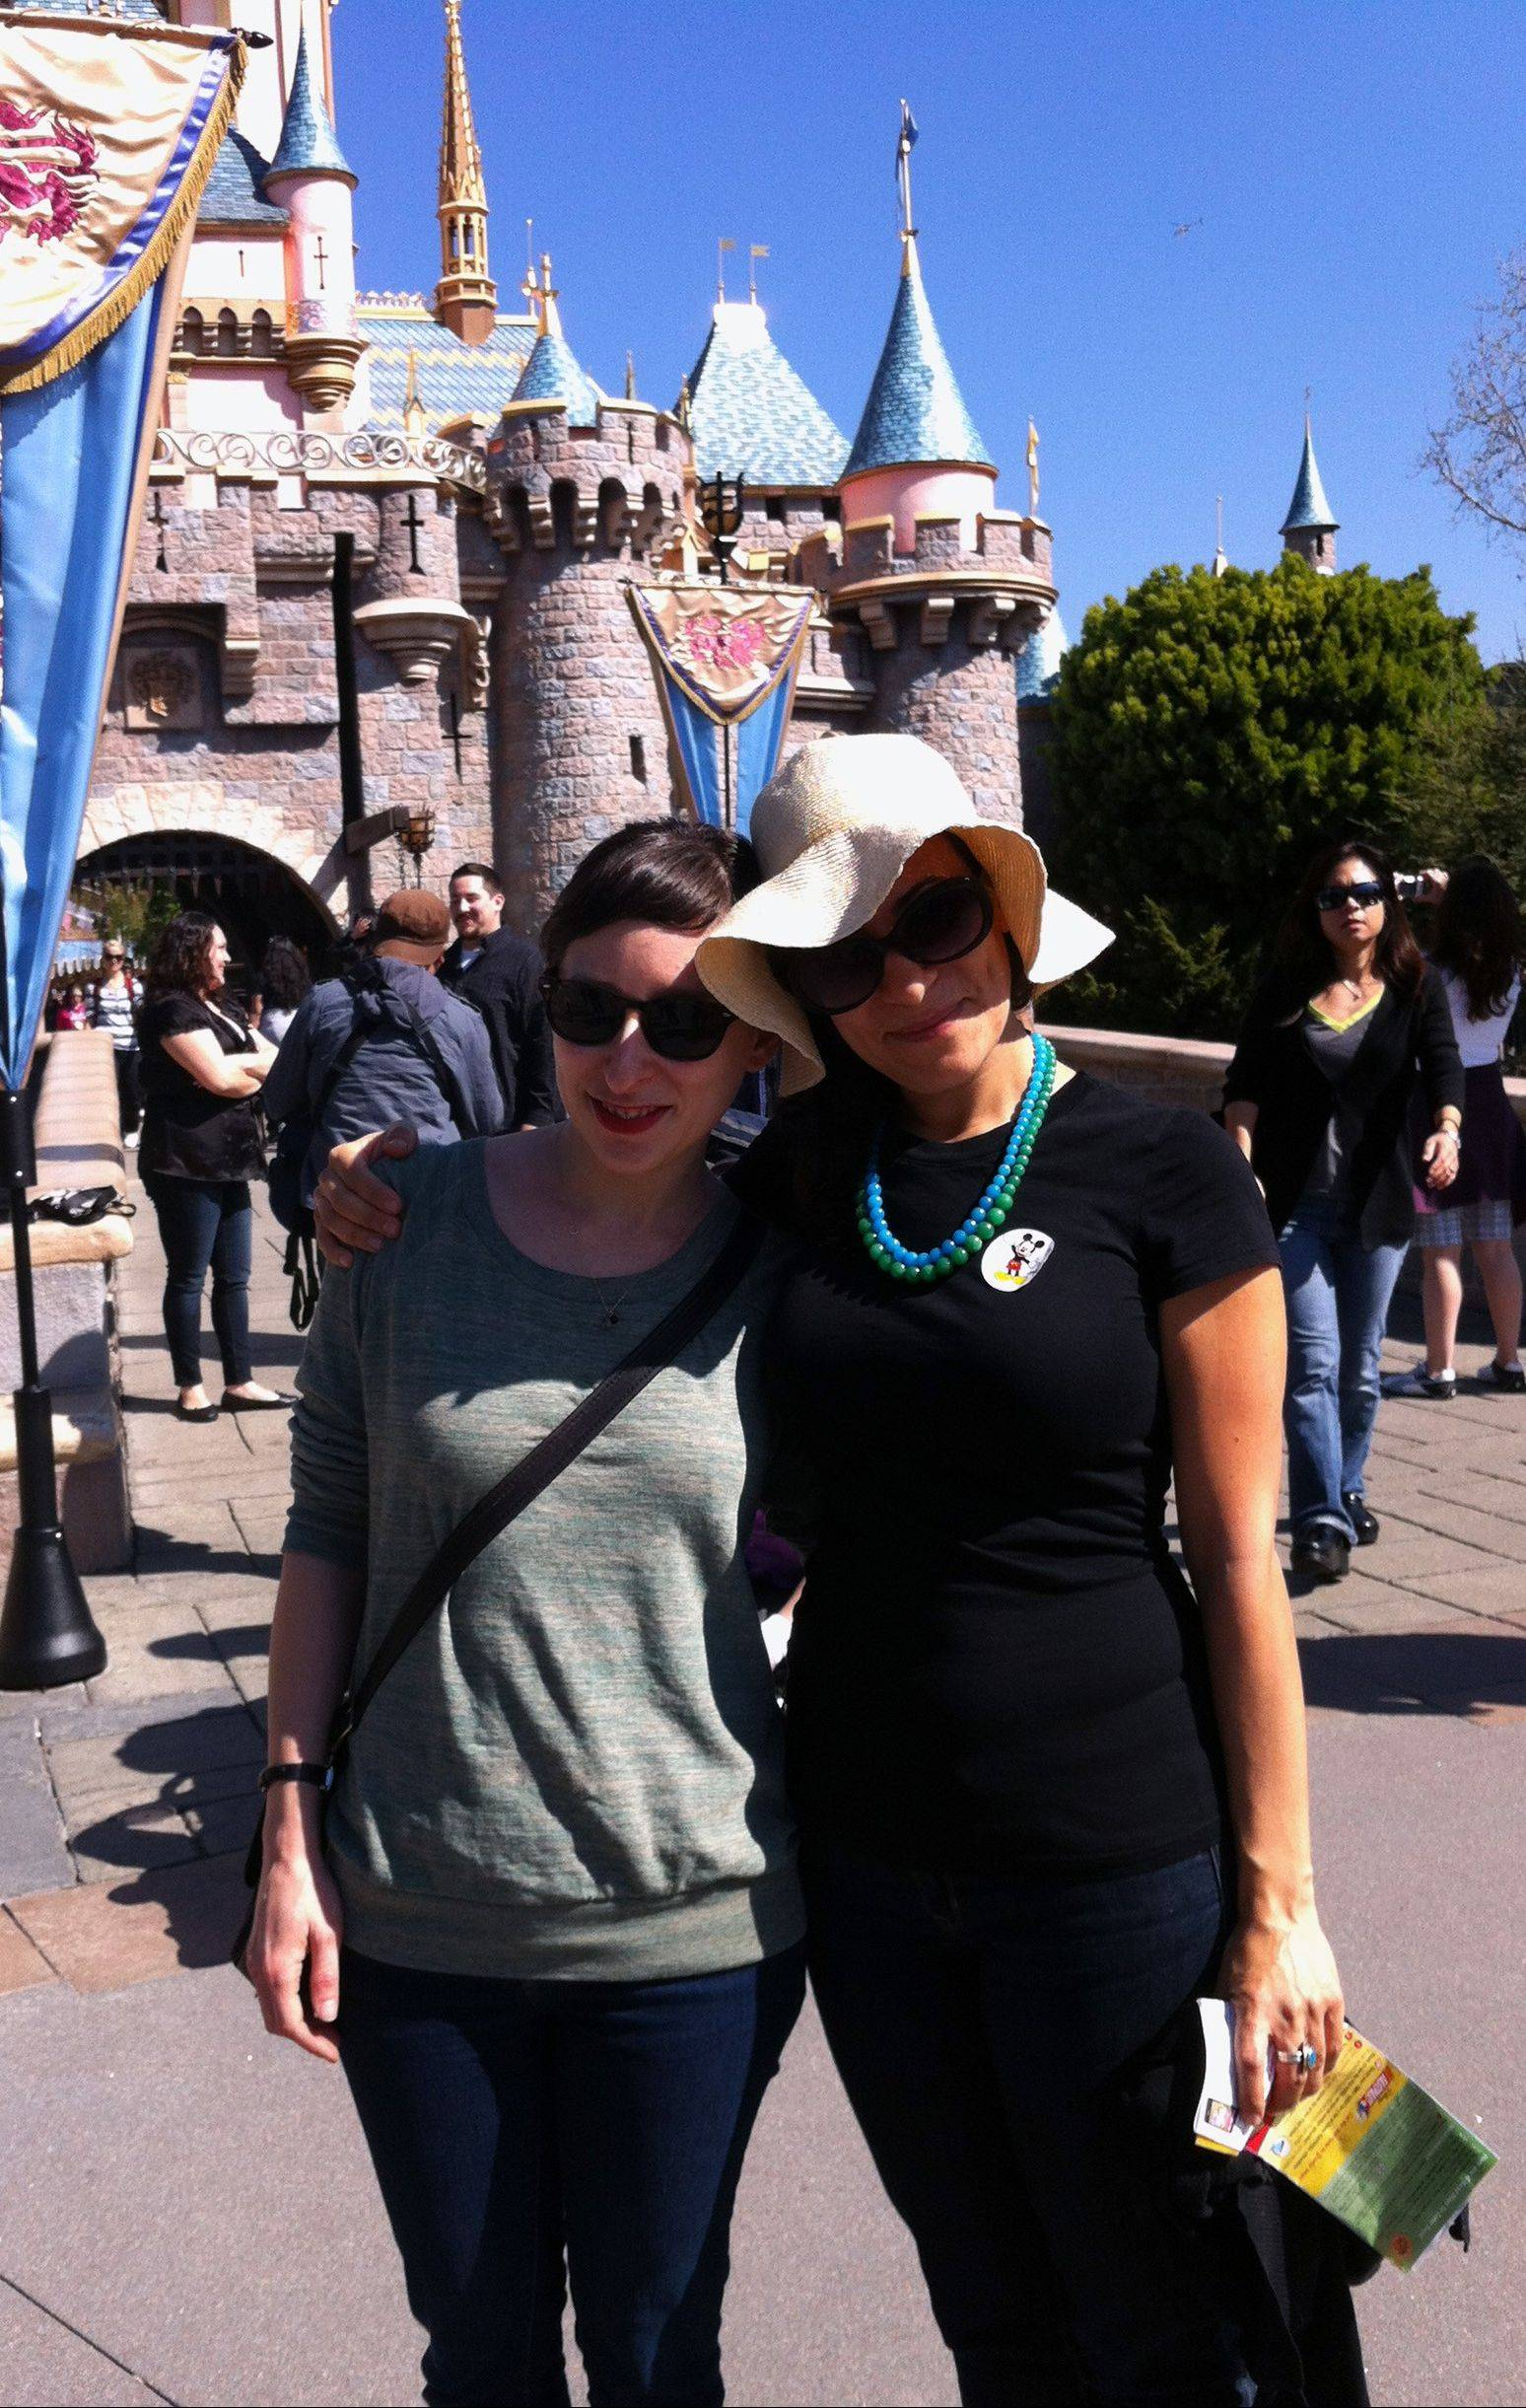 Solvej Schou, right, and her childhood friend, Joanna Sondheim, stand in front of Sleeping Beauty's Castle at Disneyland in Anaheim, Calif., and rekindle memories after a day at the amusement park.